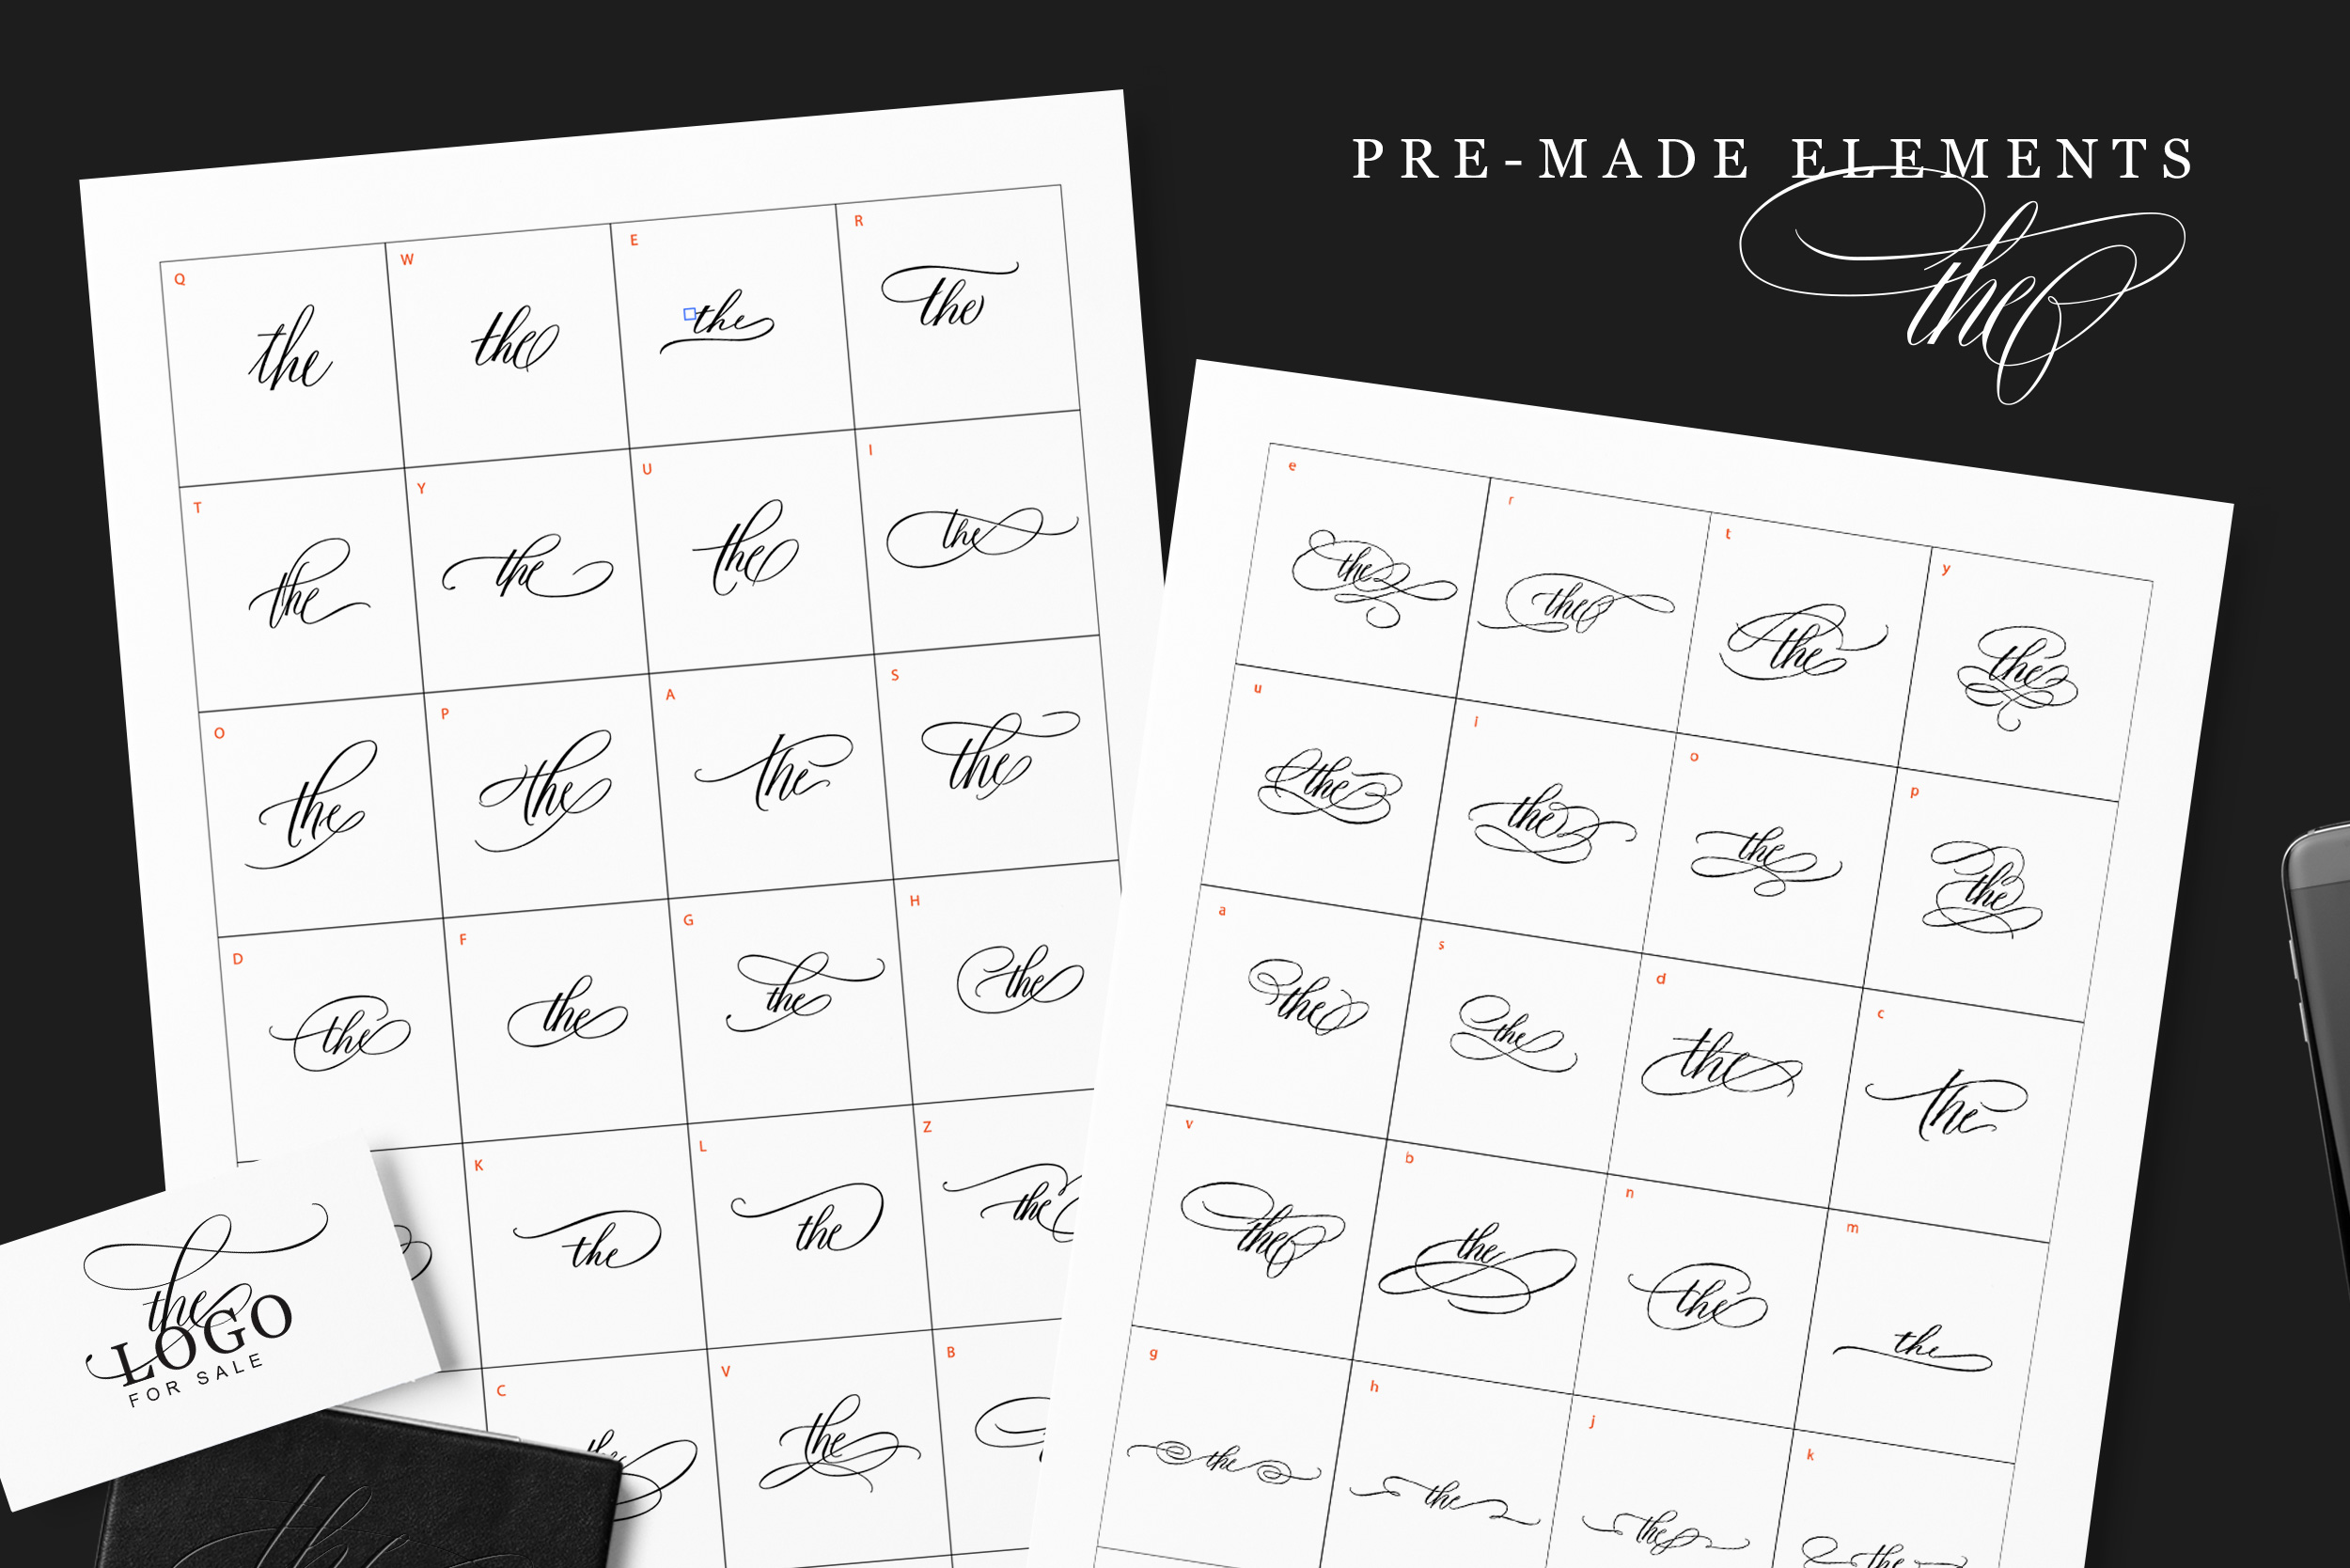 Fifty pre-made elements of